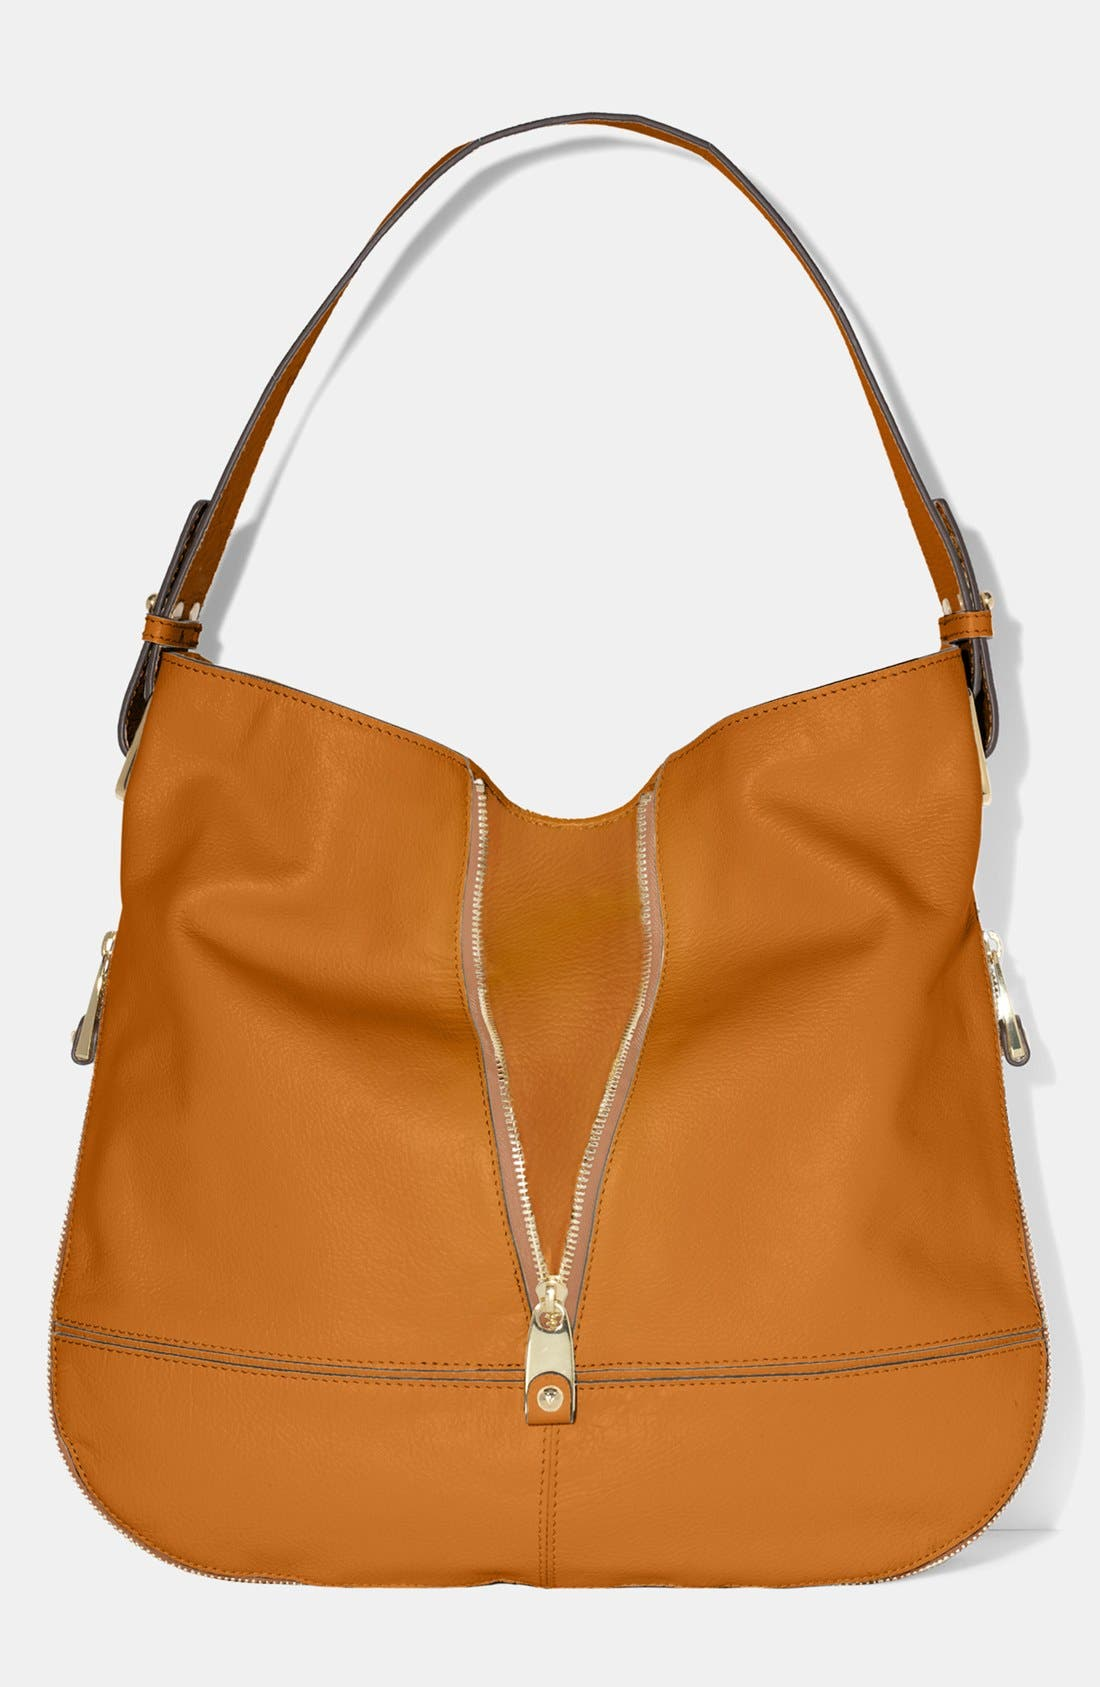 Alternate Image 1 Selected - Vince Camuto 'Iris' Hobo